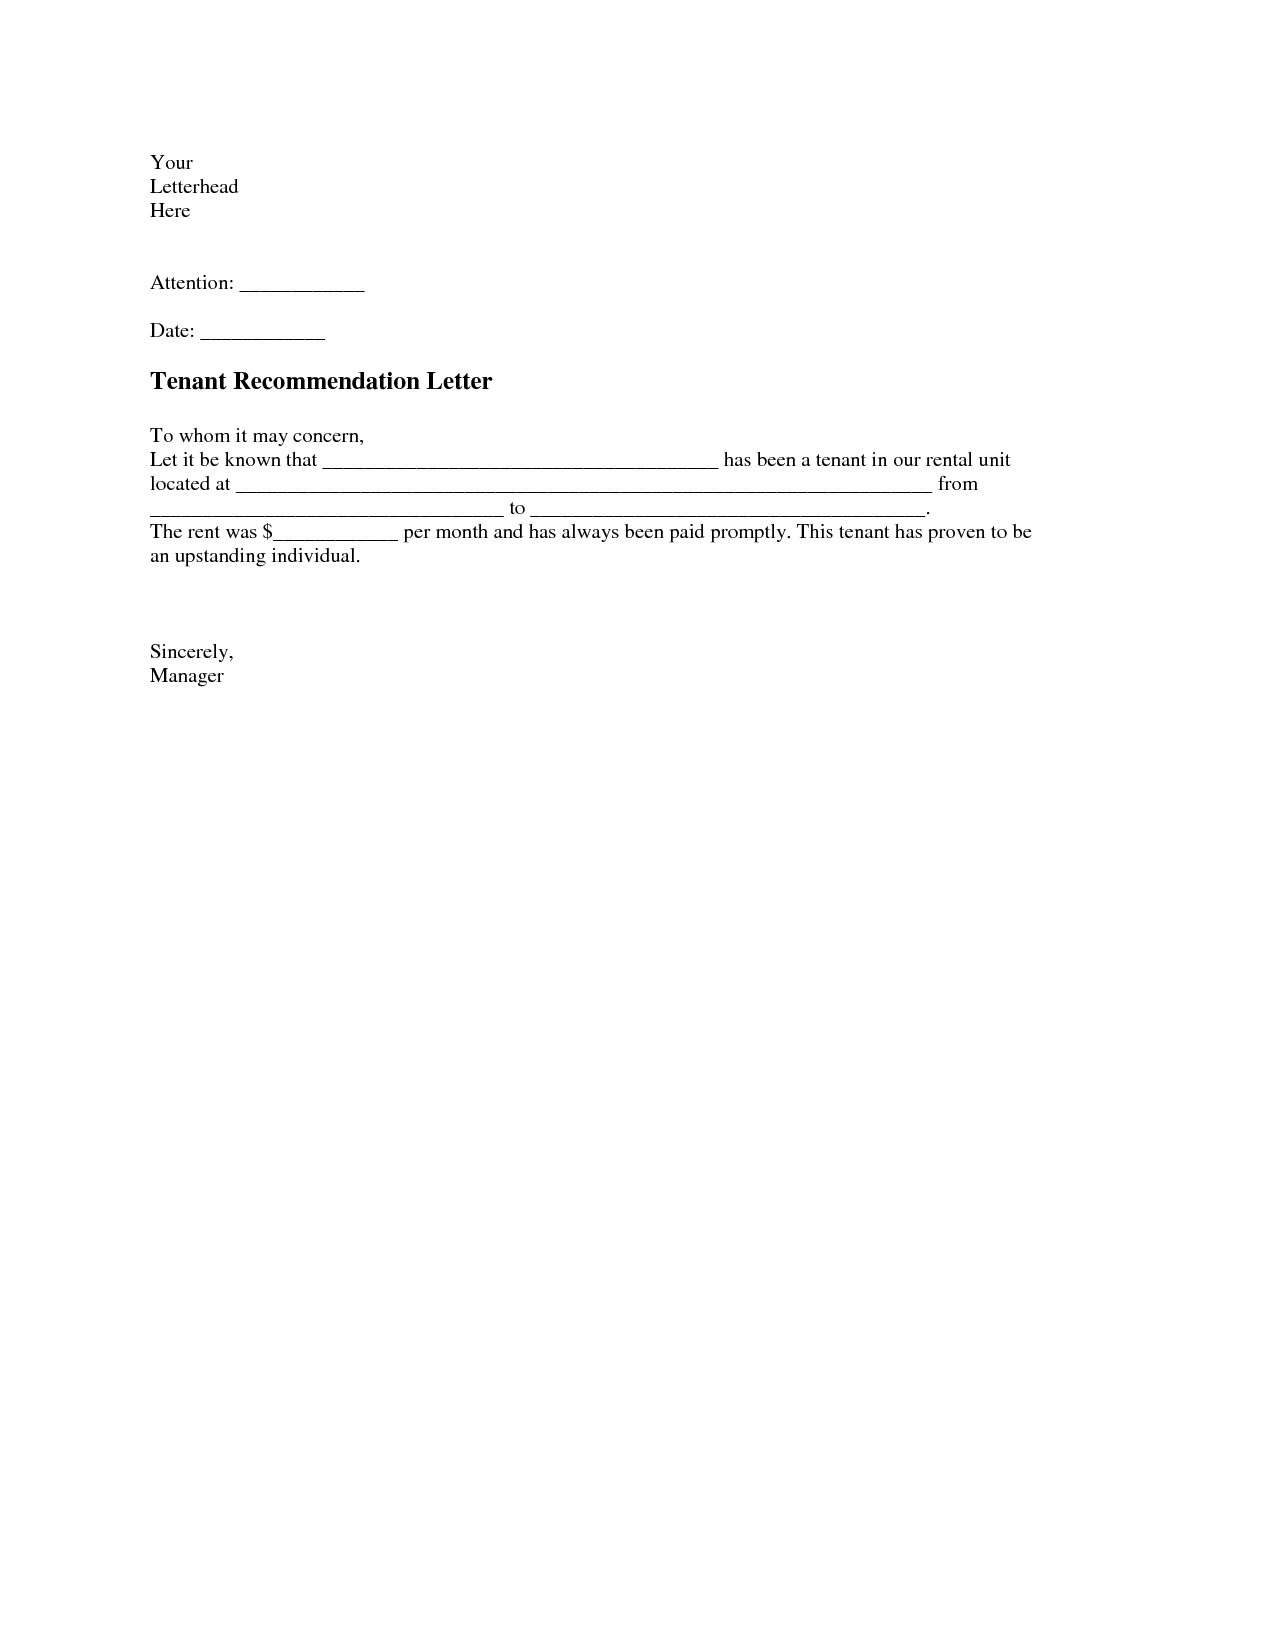 Demand Letter to Landlord Template - Tenant Re Mendation Letter A Tenant Re Mendation Letter is